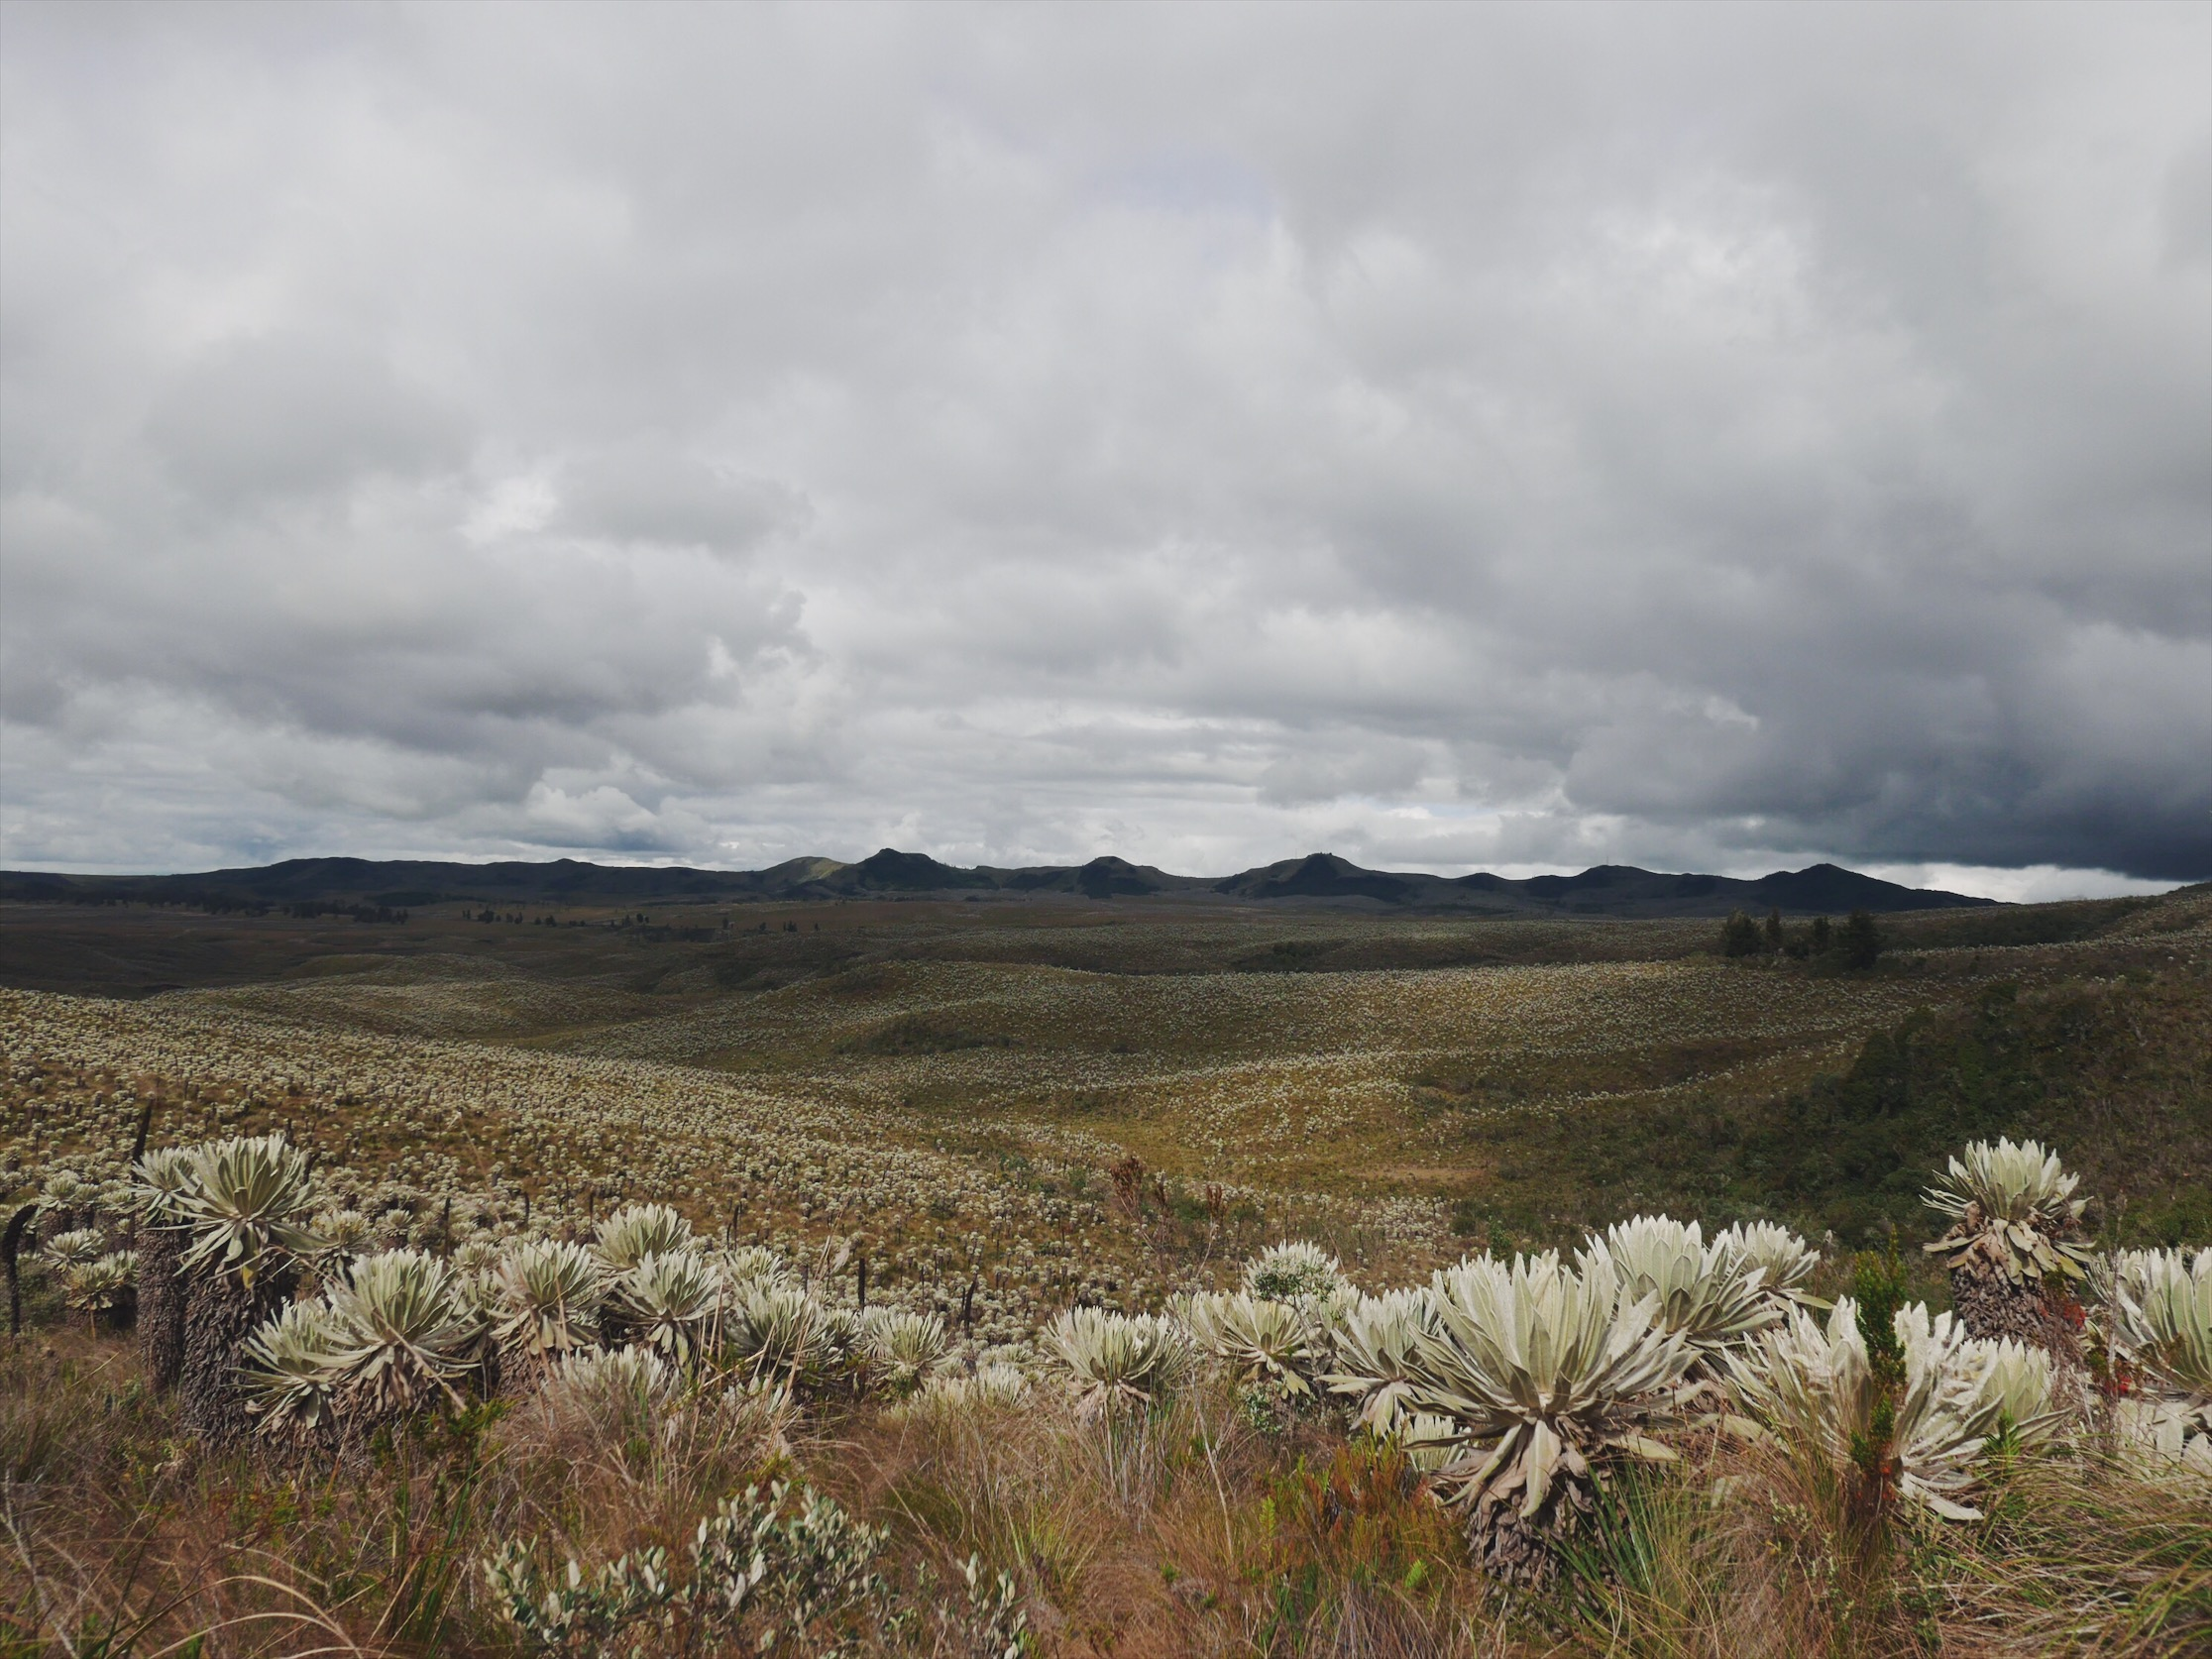 Only a few miles from the Colombian border, up past the farmlands, the landscape completely changes to something close to a cactus'd Wyoming.